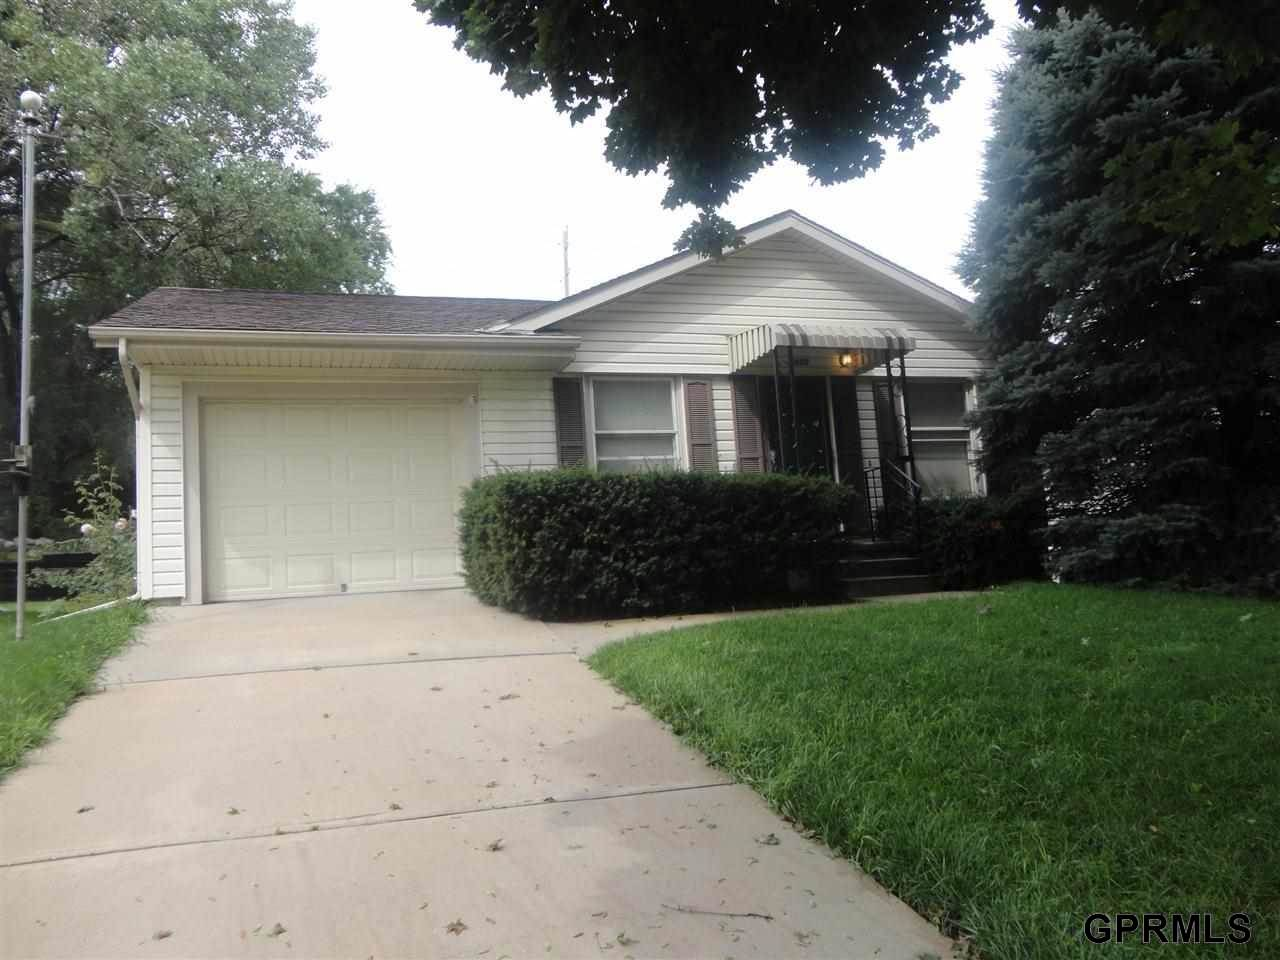 Rental Homes for Rent, ListingId:29977518, location: 2608 S 36 Street Omaha 68105